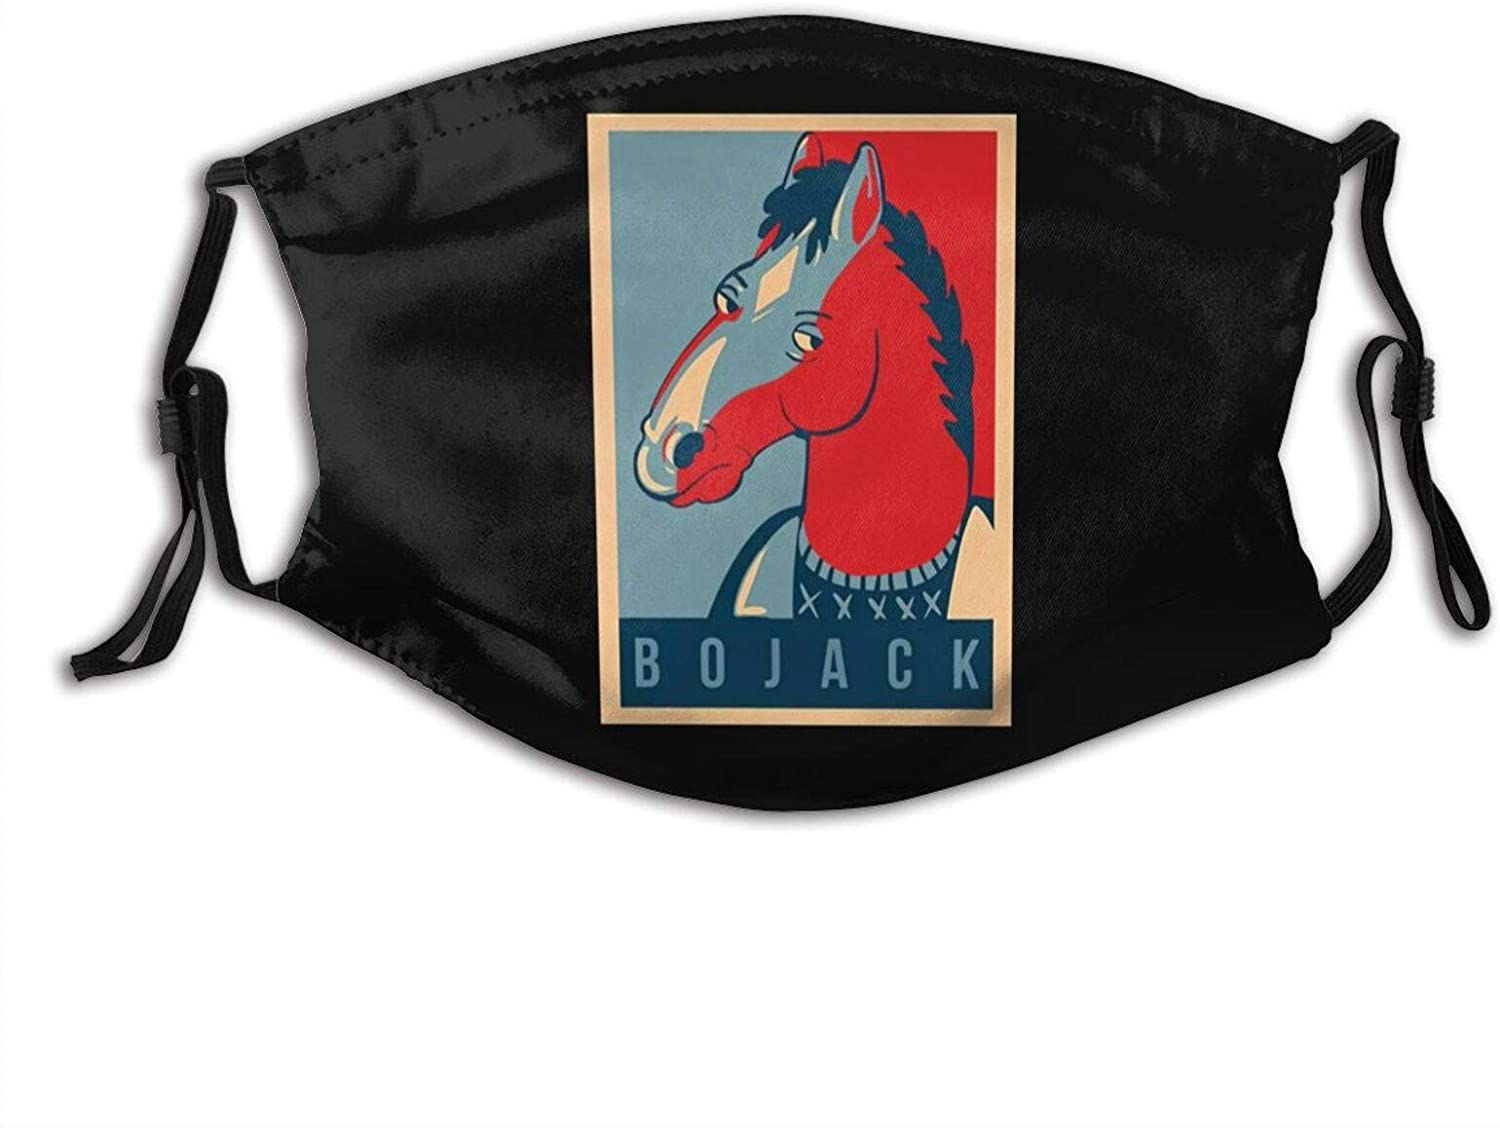 Bojack-Horseman Adjustable Unisex Reusable Face Mask Anti-Dust Masks Mouth Scarf Balaclava Face Protection For Outdoor With 2 Filters